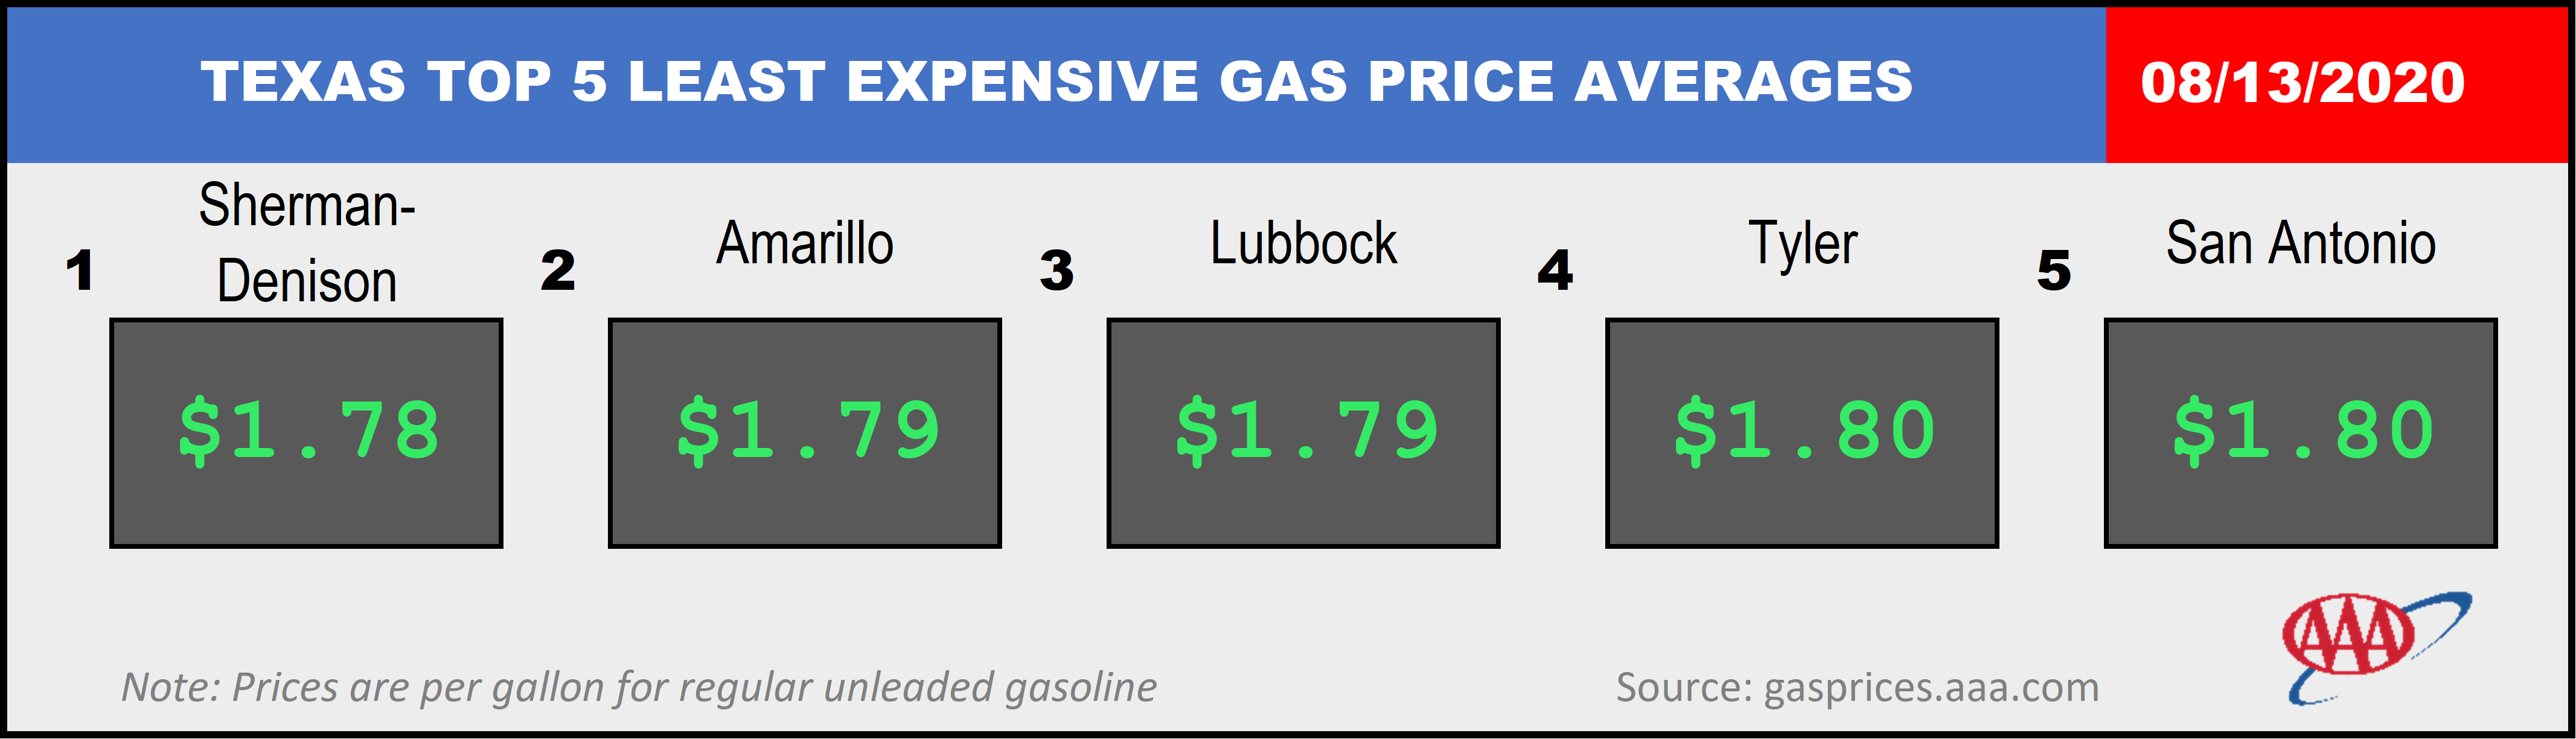 TX Least Expensive Markets 08 13 20